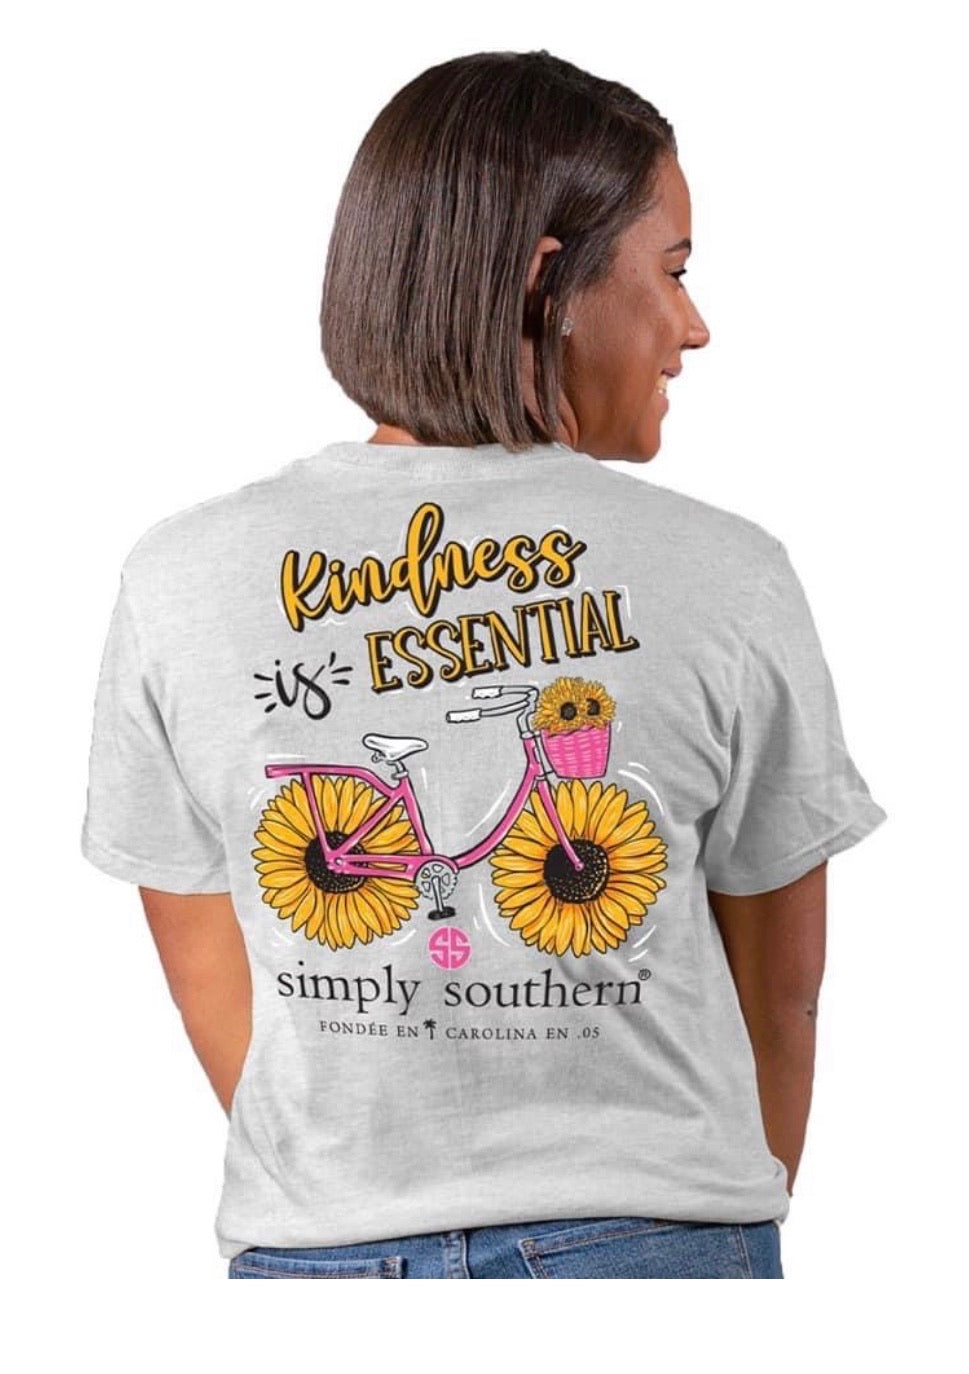 Simply Southern Kindness is Essential